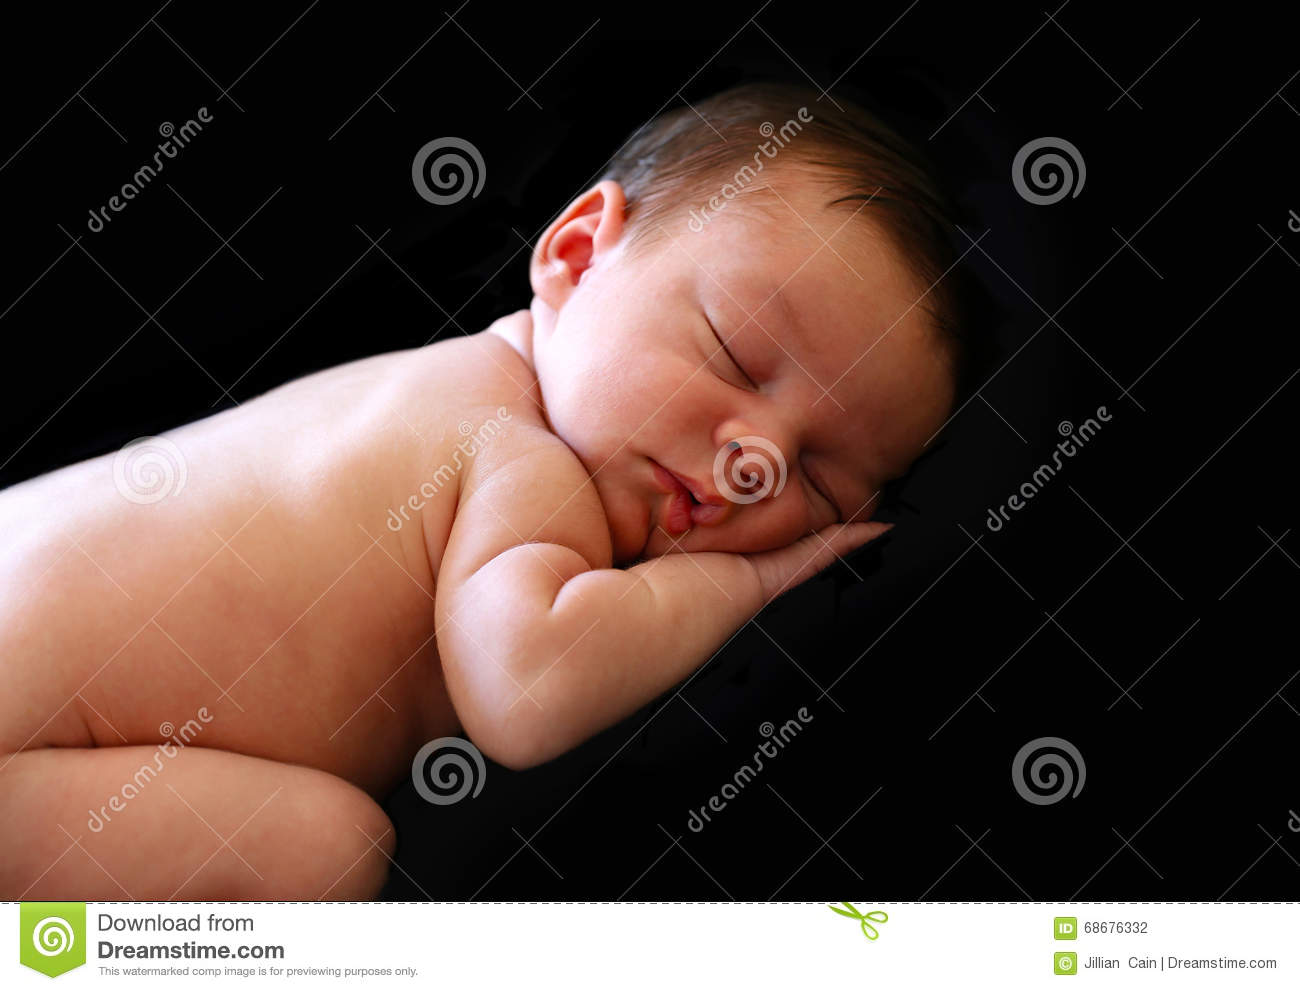 Beautiful baby sleeping at a 45 degree angle on a black background with puckered lips